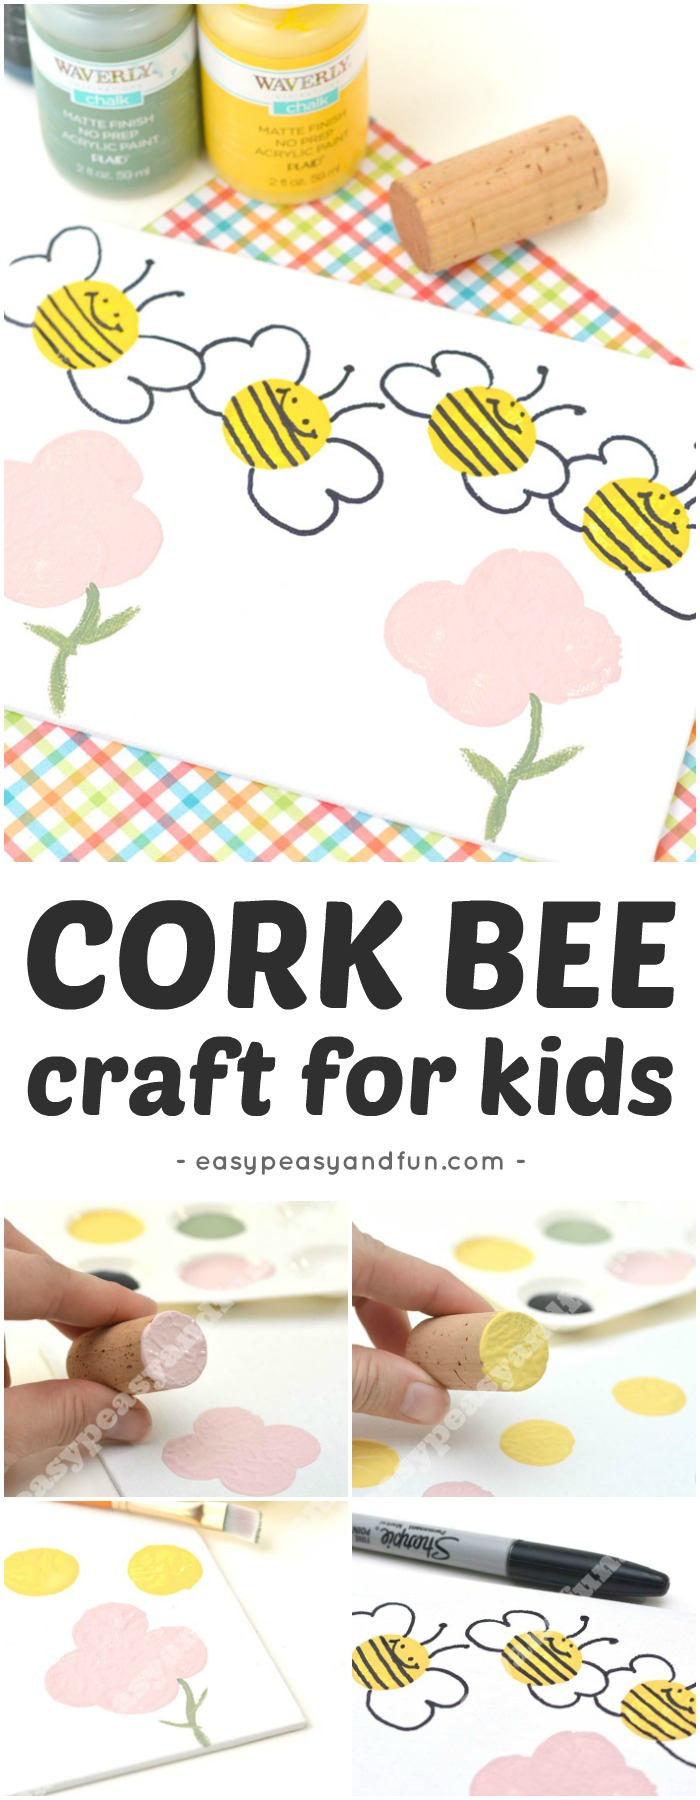 Simple Bee Art Idea - Stamping with Corks #Corkcraftforkids #Springcrafts #beecrafts #toddlerart